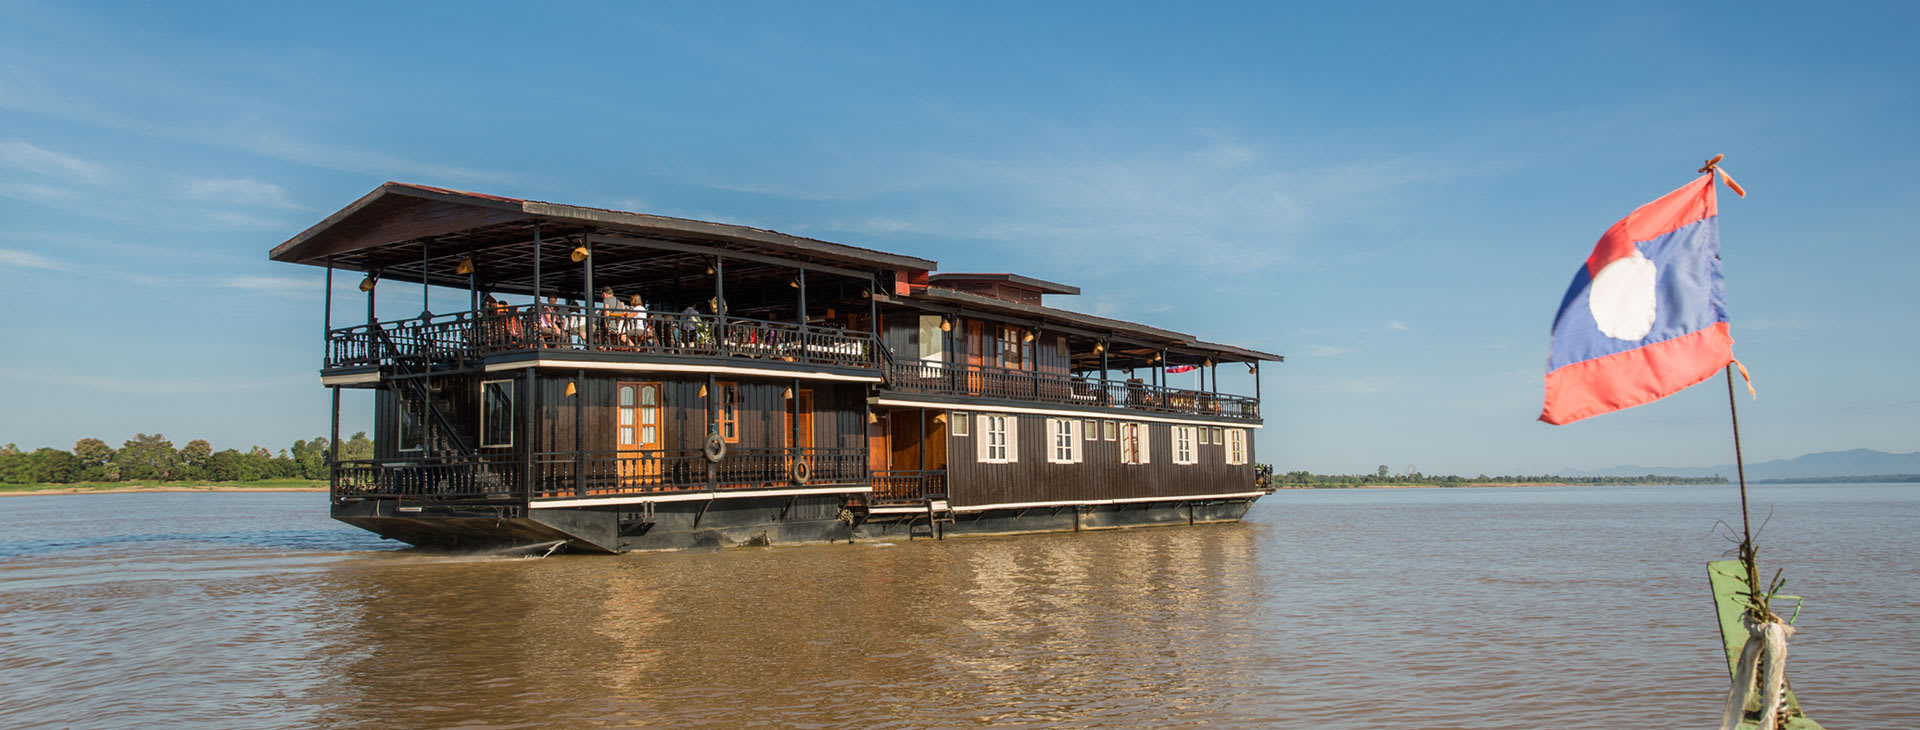 Vat Phou cruising the Mekong in the south of Laos